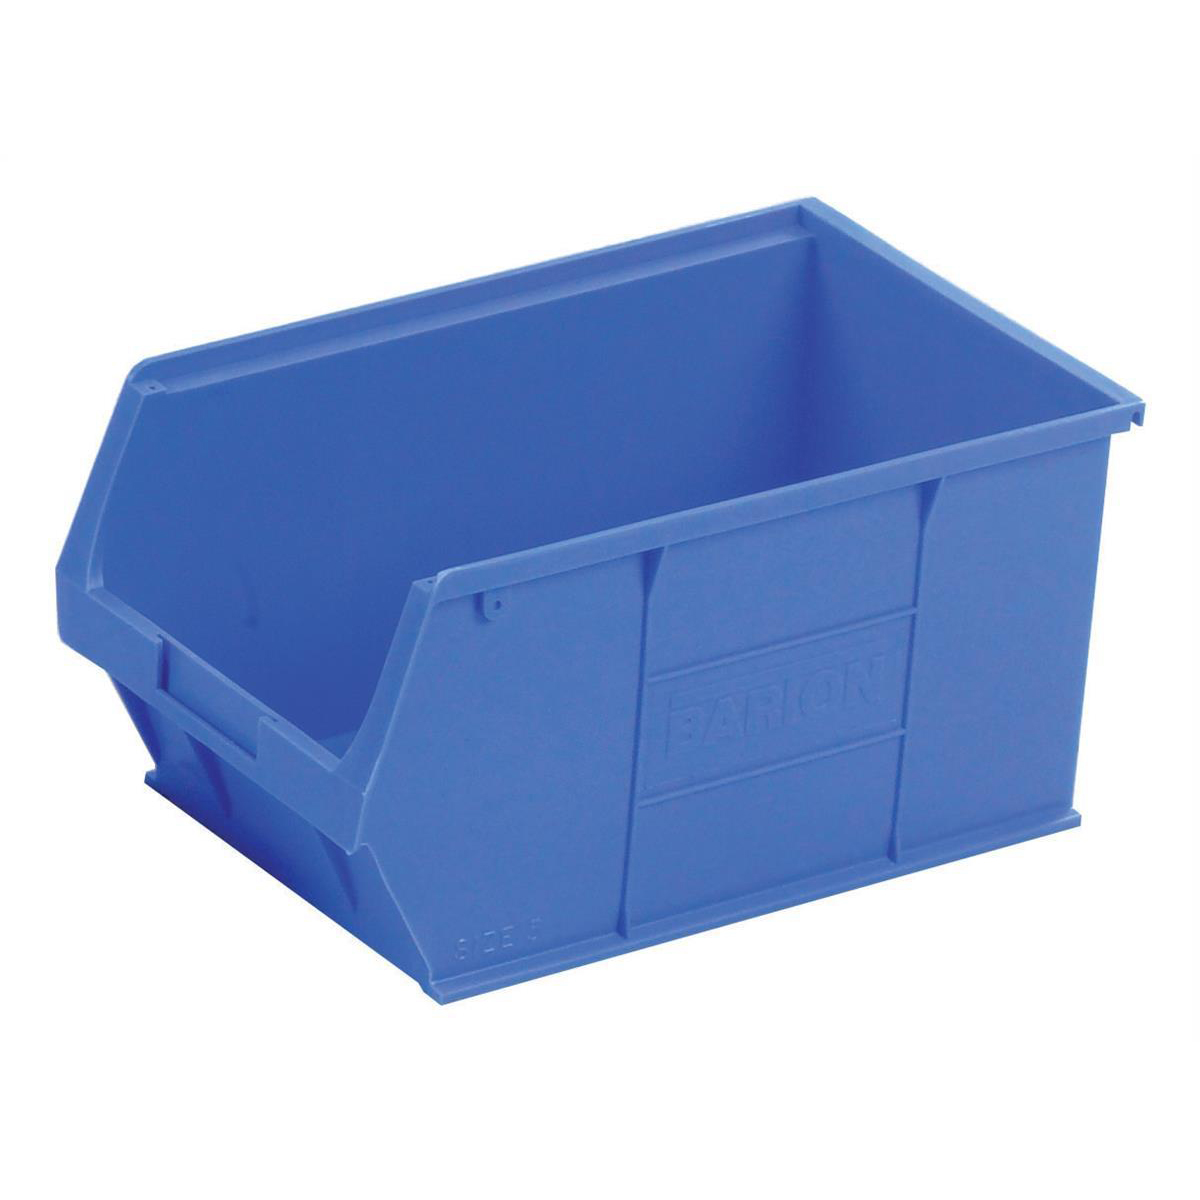 Container Bin Heavy Duty Polypropylene W350xD205xH182mm Blue Pack 10